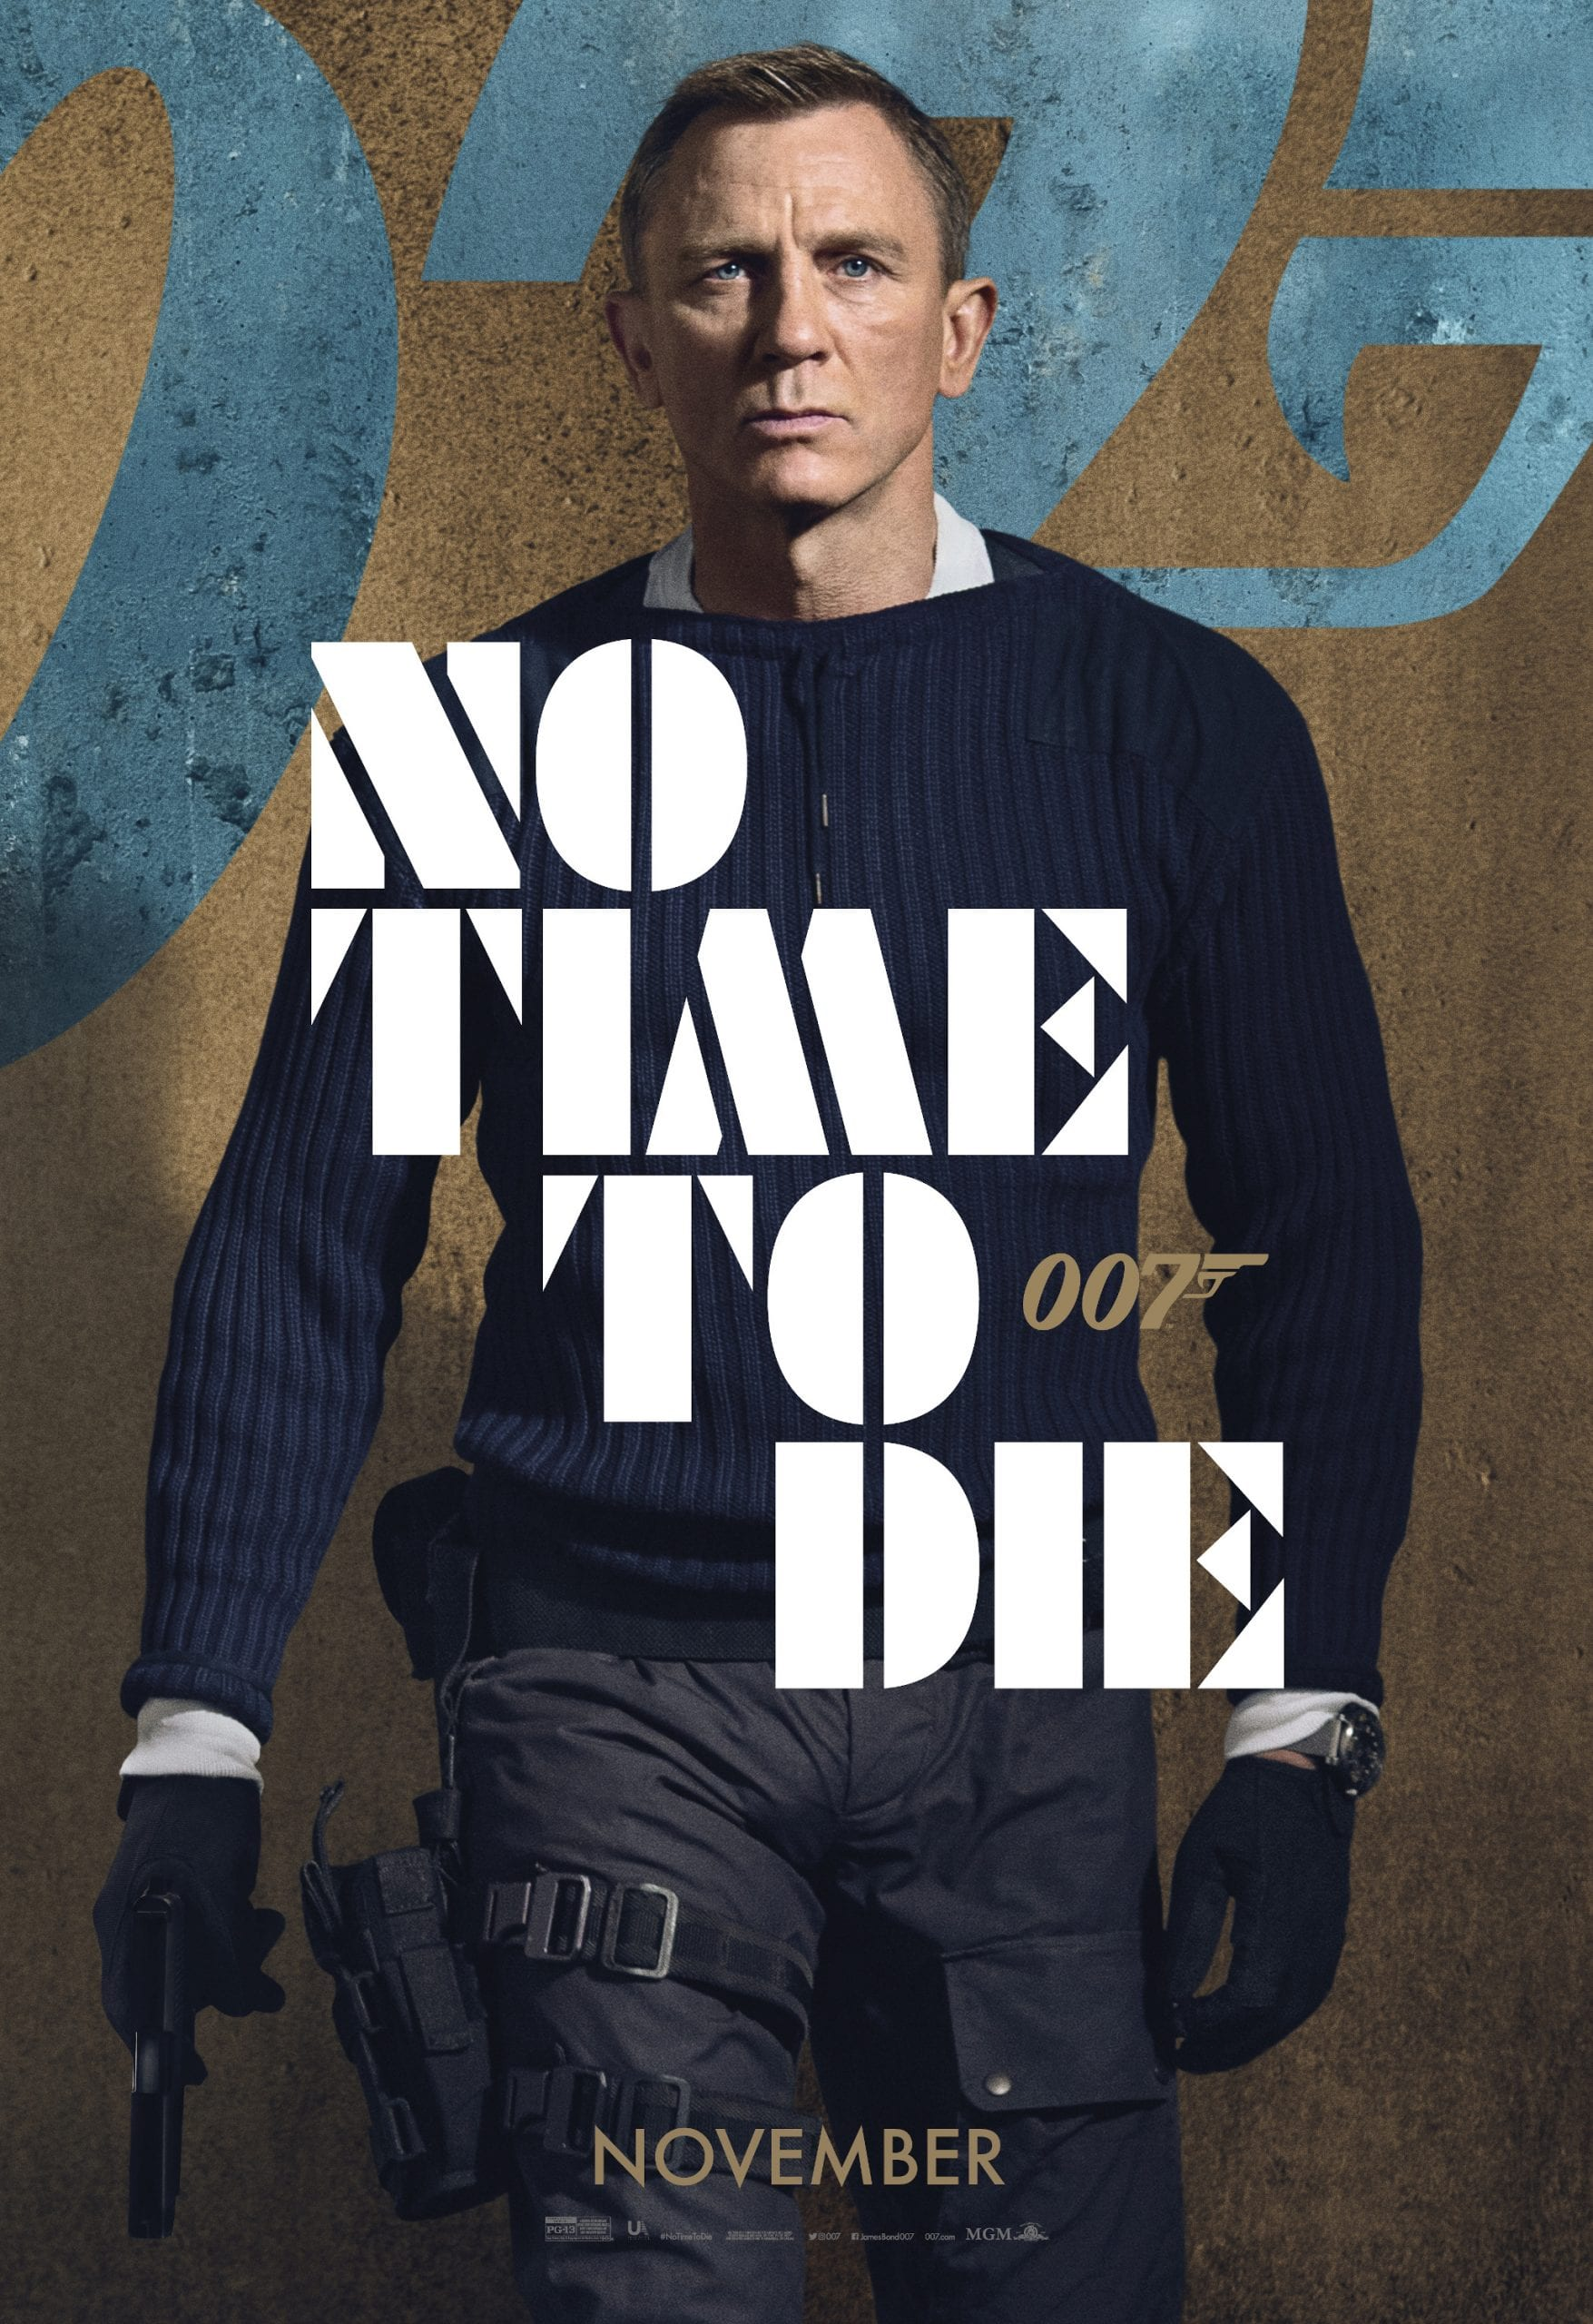 007 No Time To Die Bond 25 Character Posters Daniel Craig as James Bond